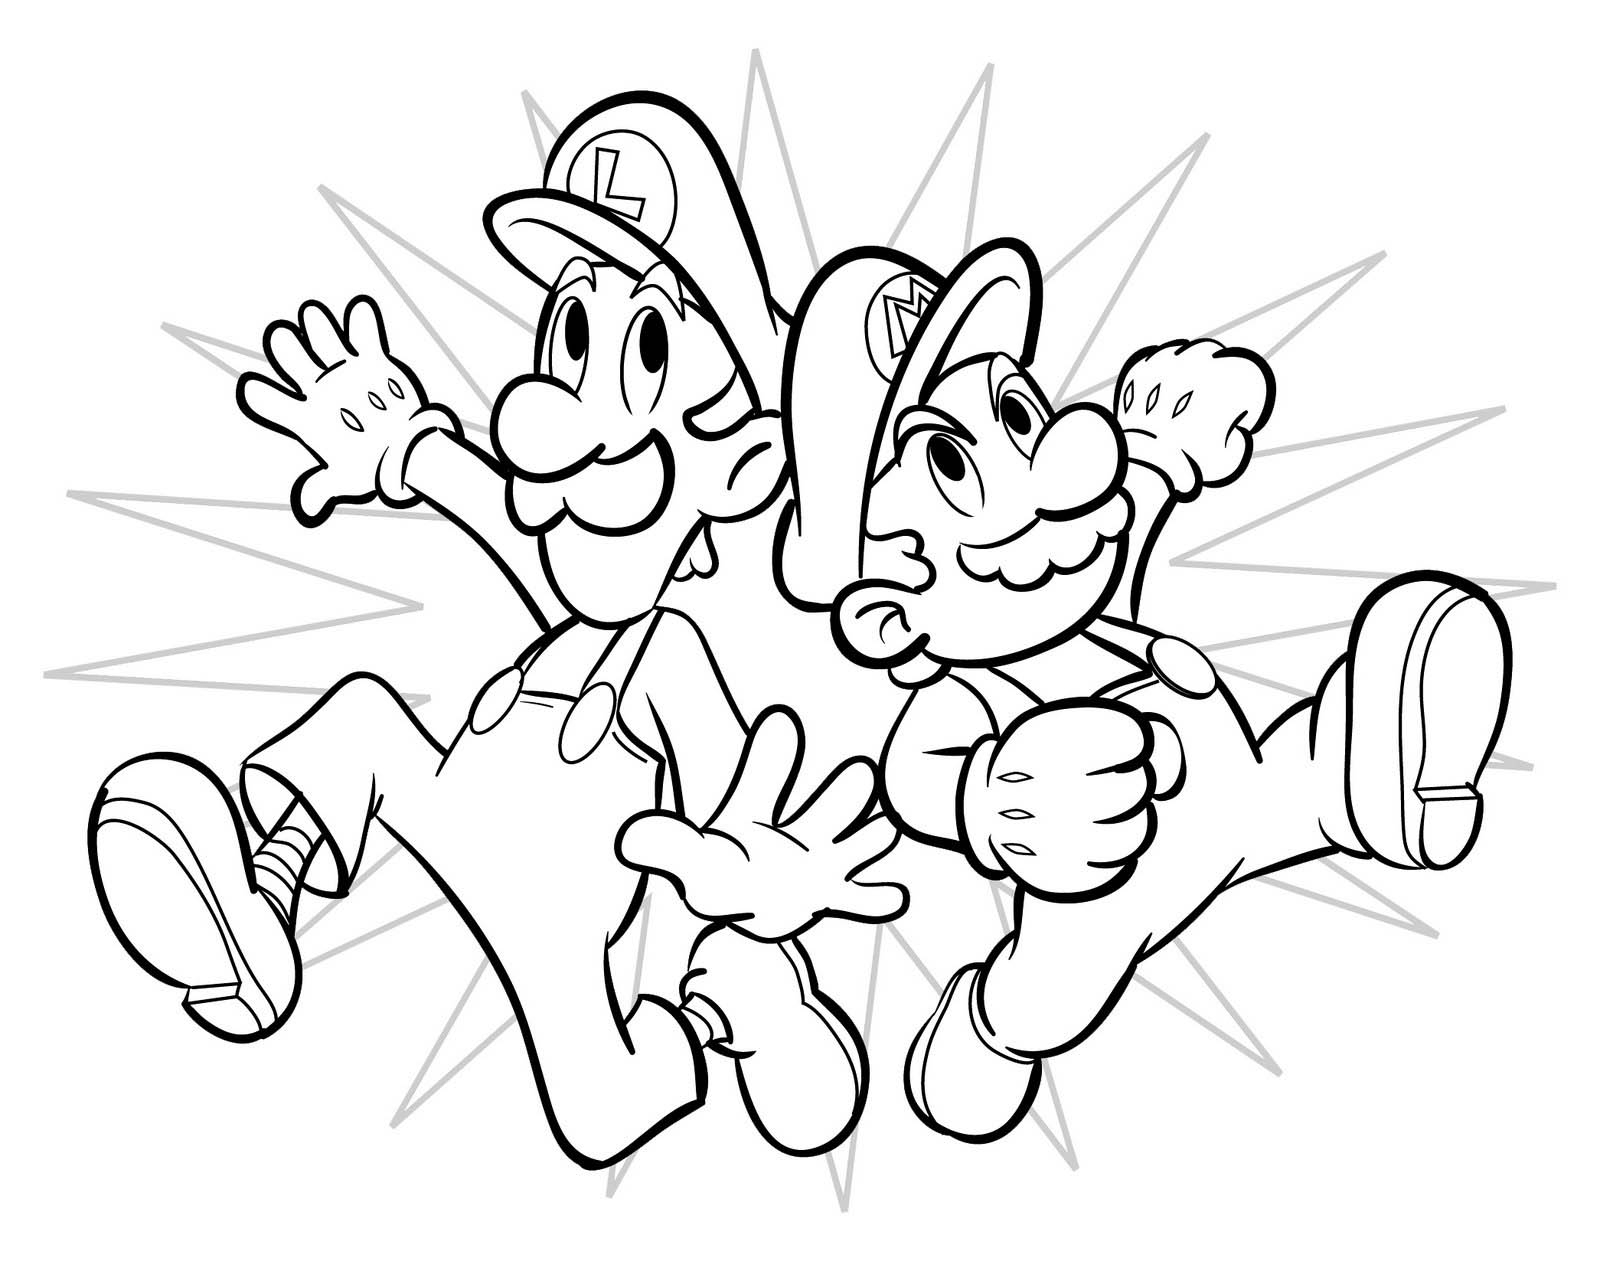 Free Printable Mario Coloring Pages for Kids Download Of Super Mario Bros Coloring Pages to Print